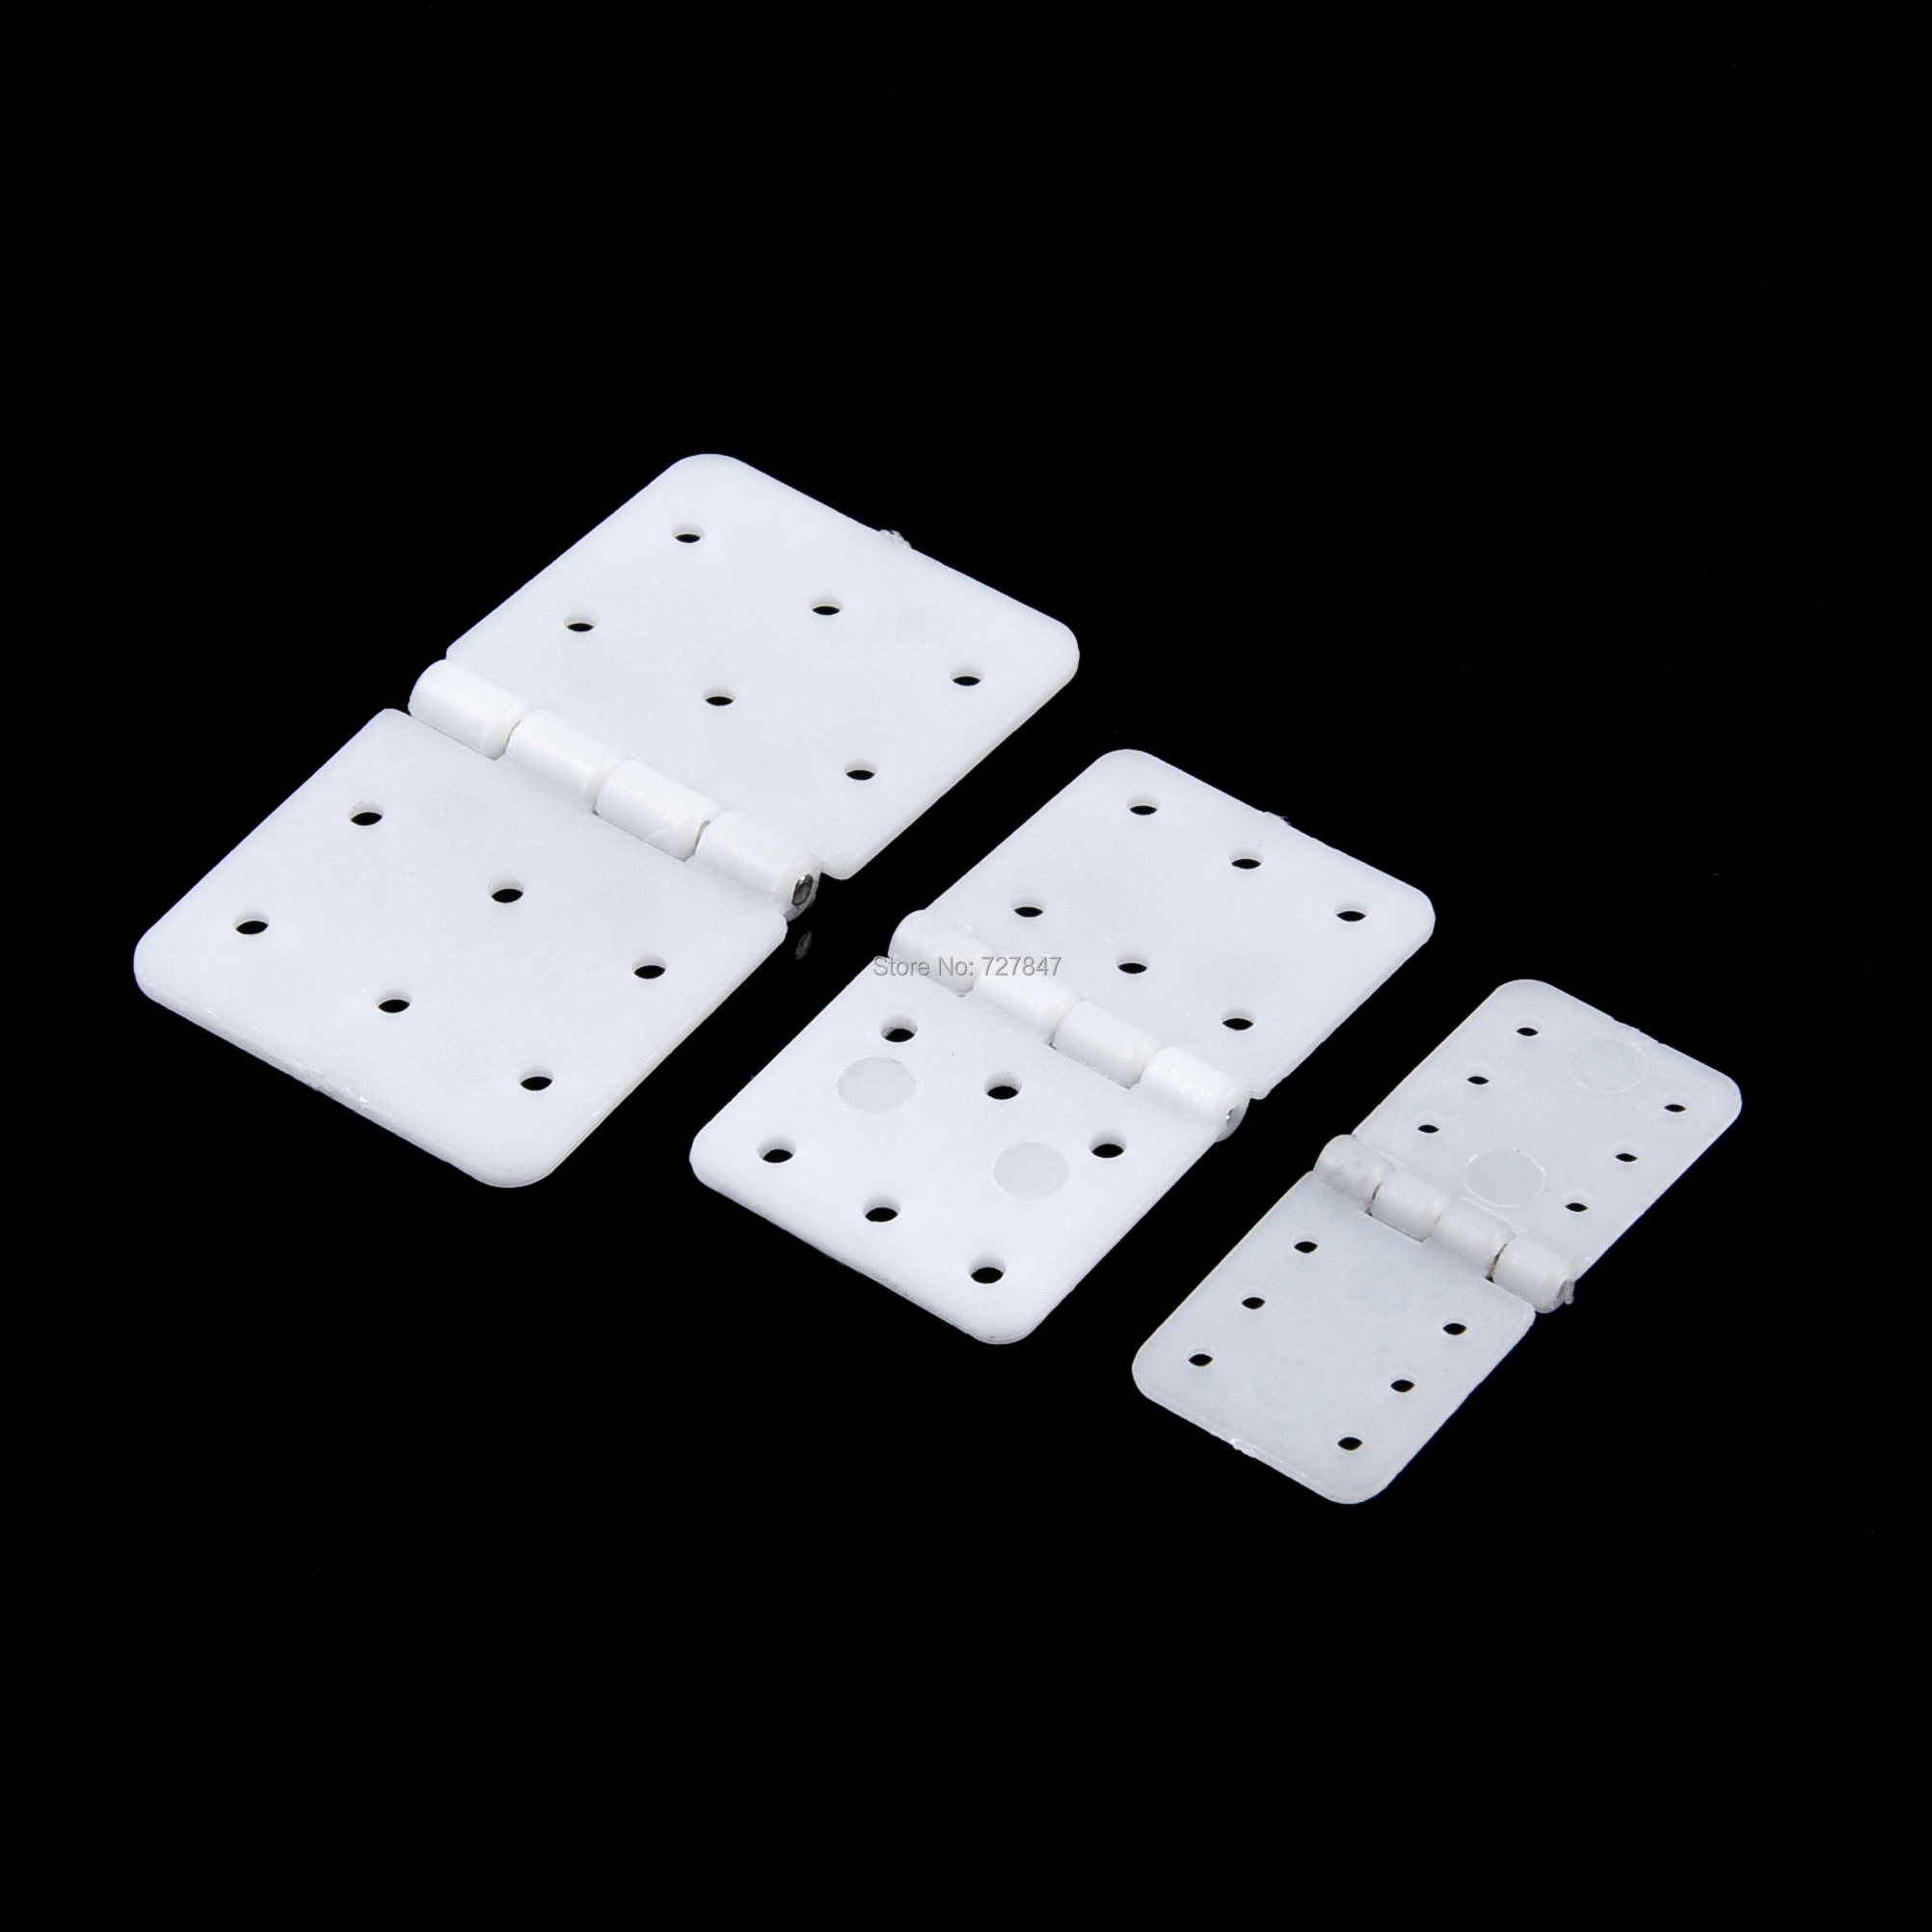 20pcs 30pcs 40pcs Nylon & Pinned Hinge 20x36mm / 16x29mm / 12x24mm For RC Airplane Plane Parts Model Replacement